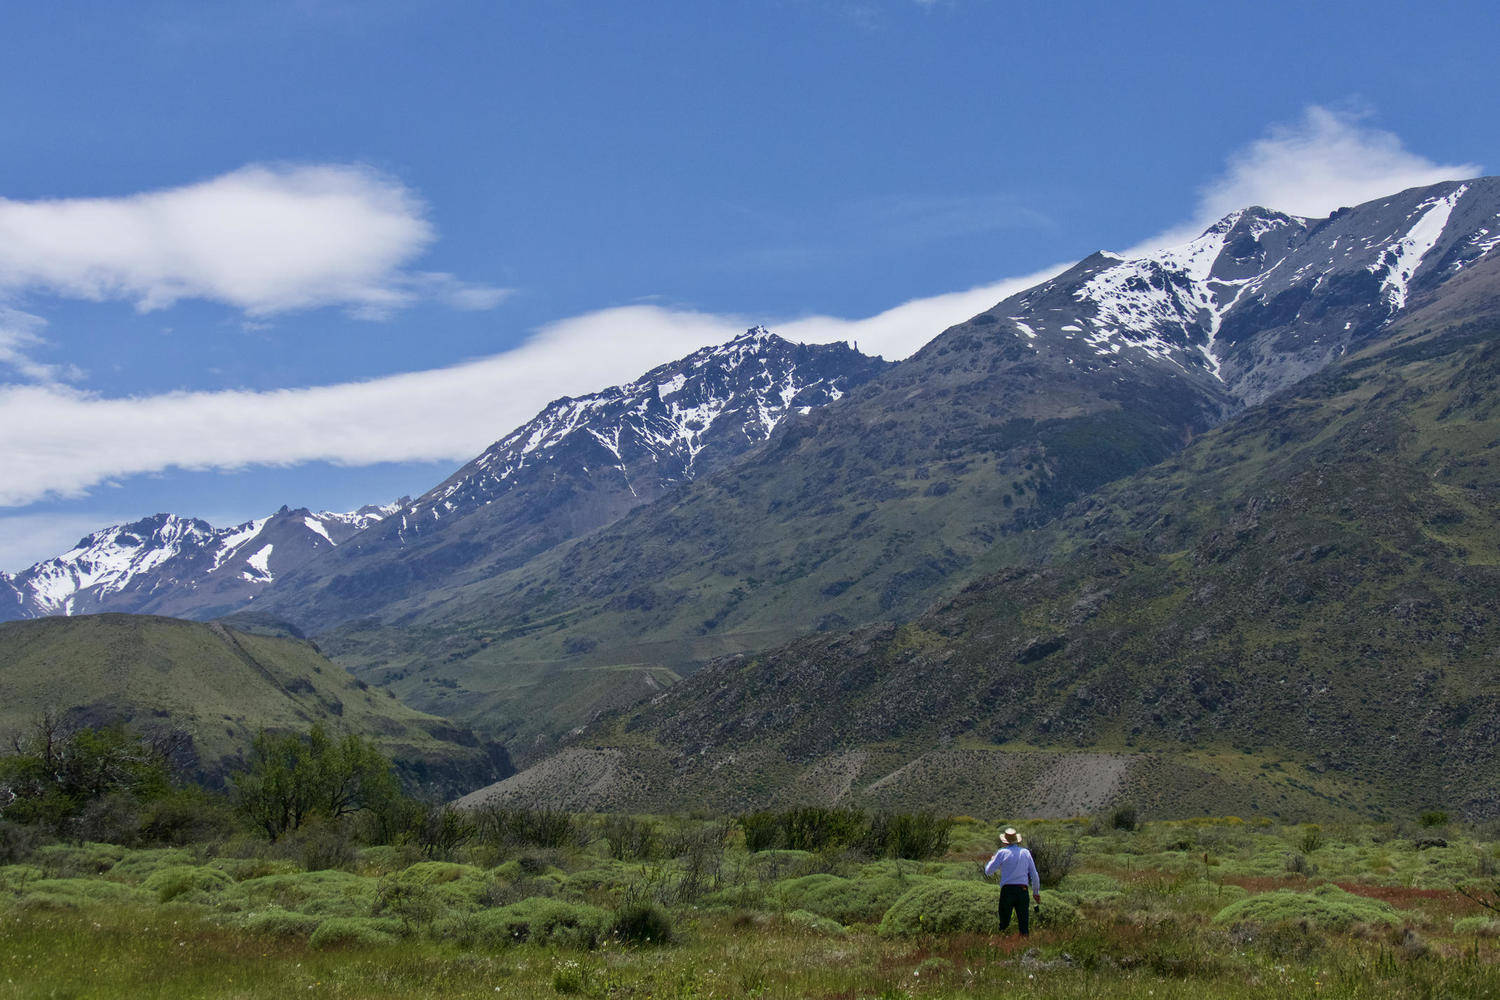 Walking the Aviles Trail in Parque Patagonia